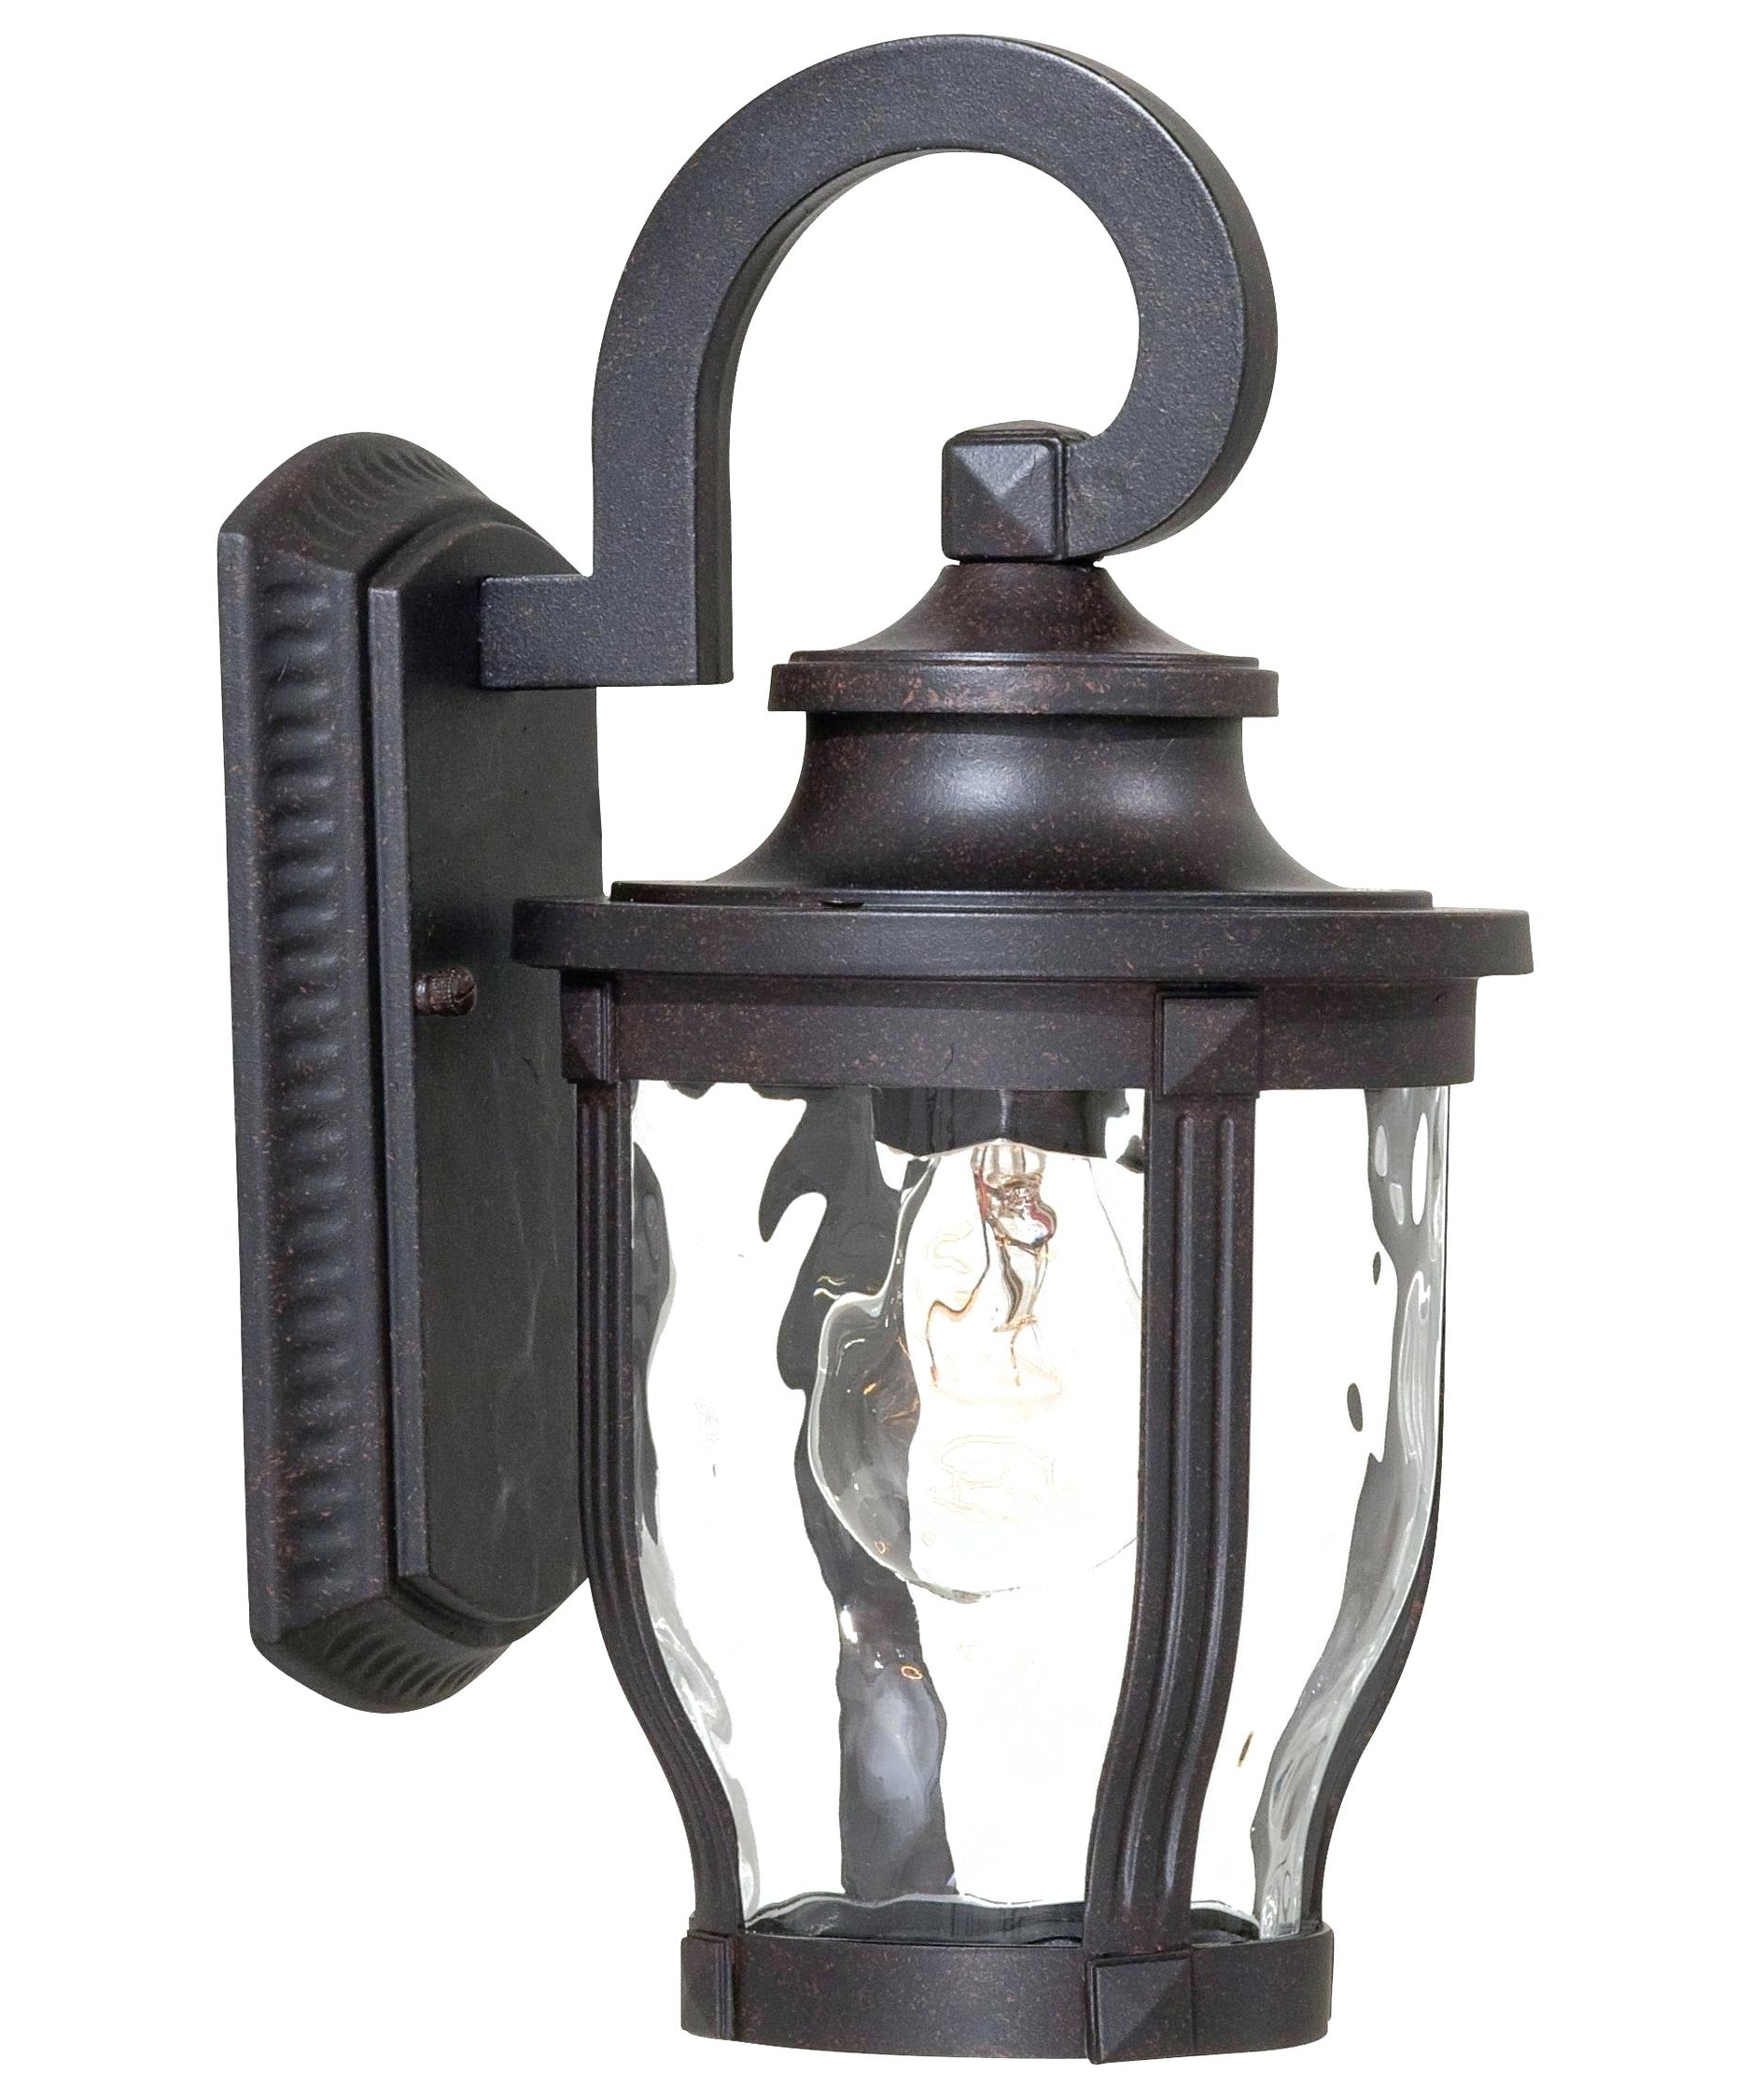 Outdoor Wall Lights With Gfci Outlet Regarding Well Known Interior (View 14 of 20)